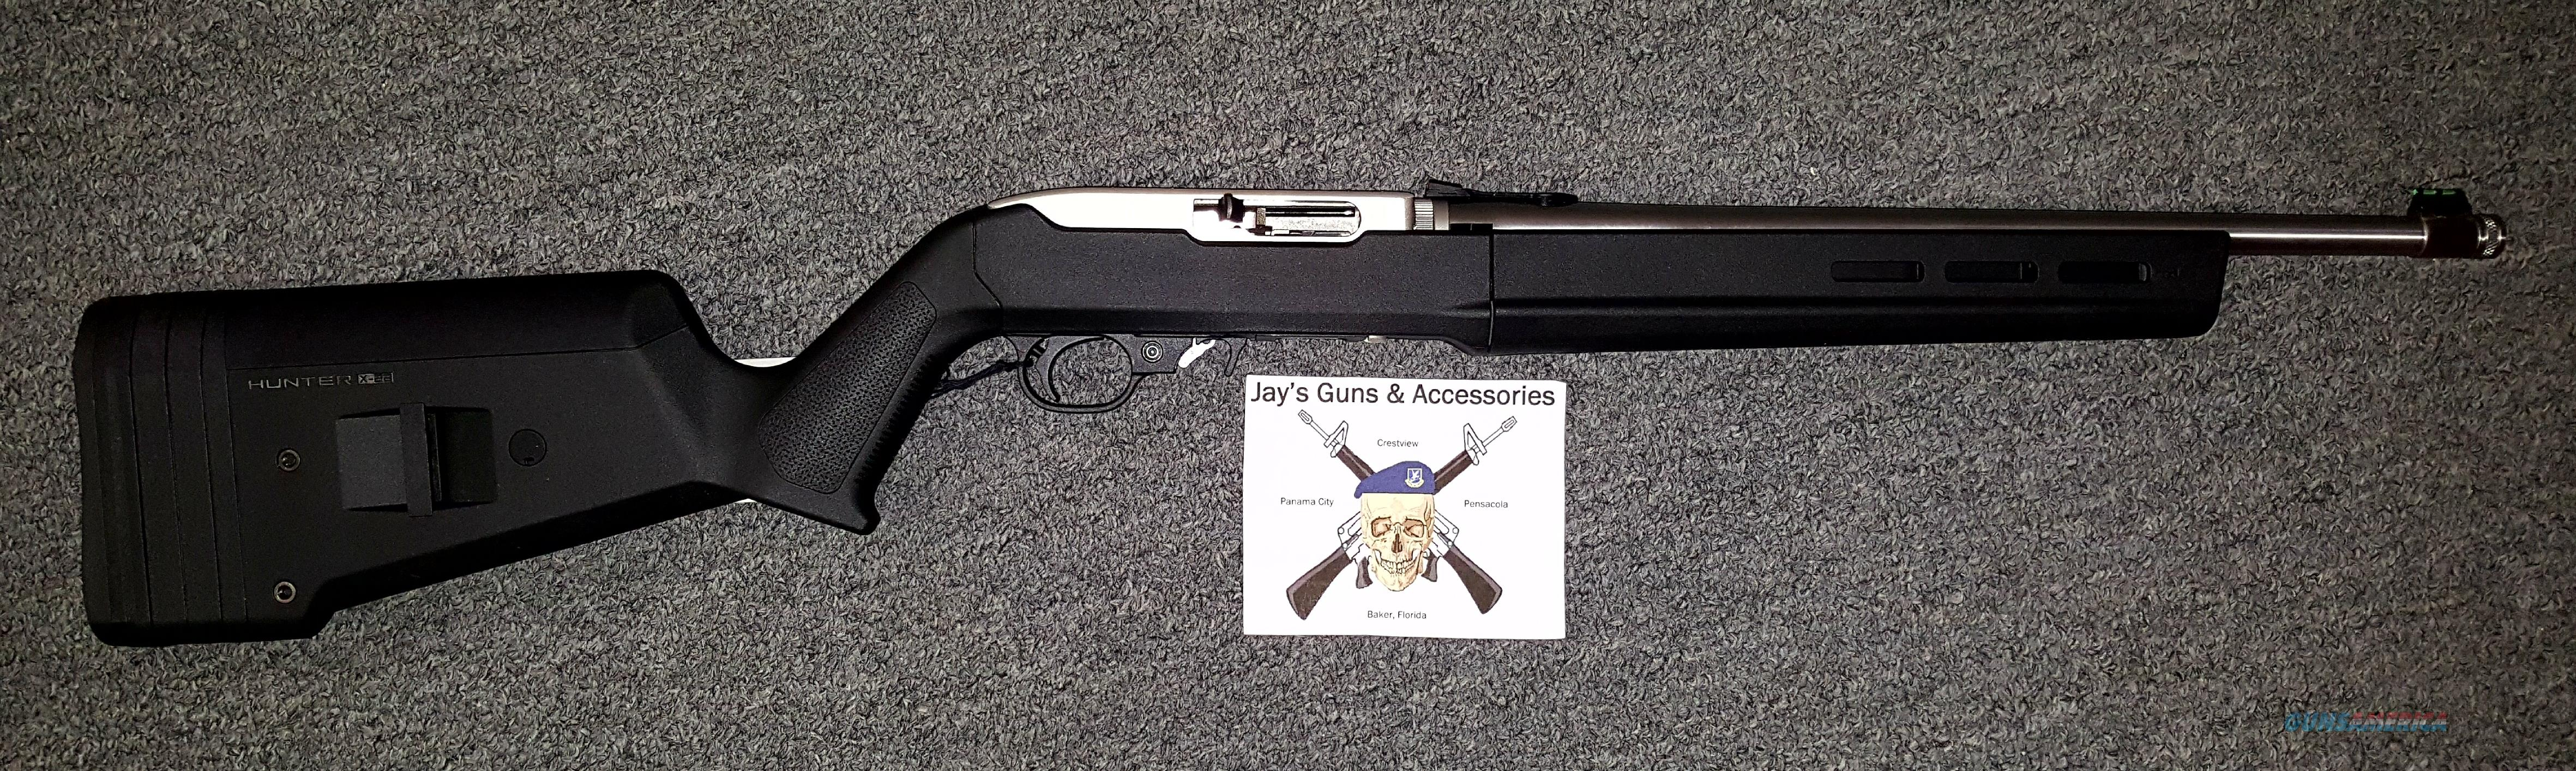 Ruger 10/22 Takedown (21183) *New Model*  Guns > Rifles > Ruger Rifles > 10-22